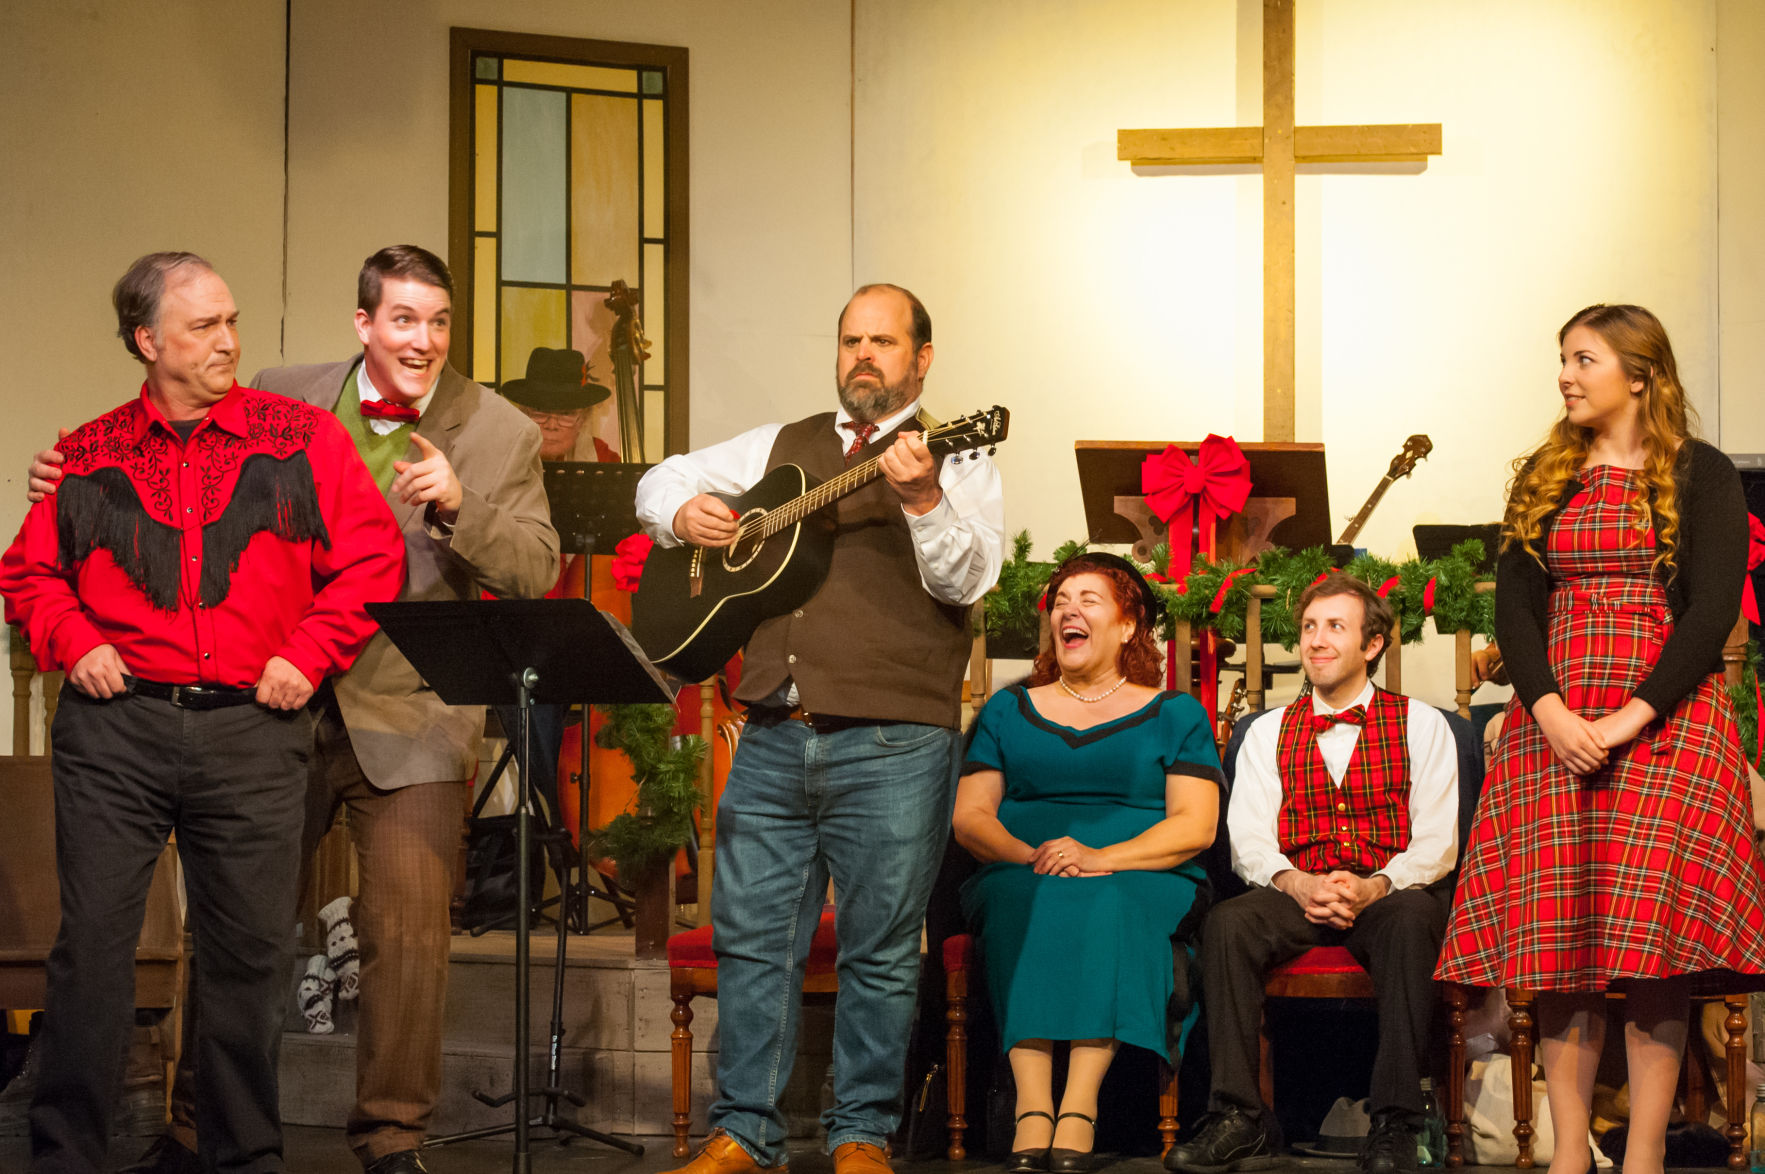 Sanders family brings Christmas to Fauquier Community Theatre ...